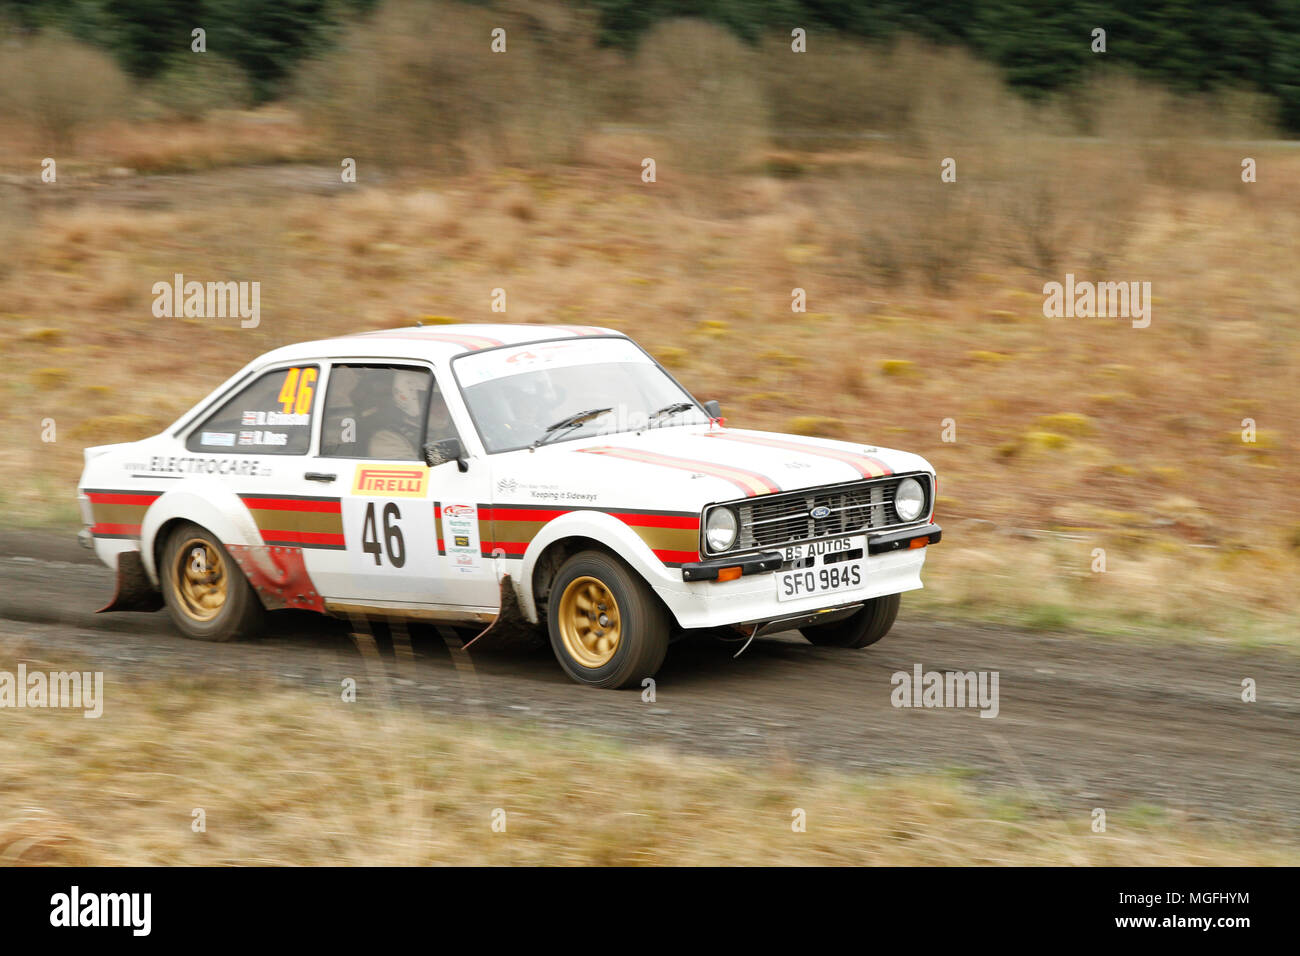 Richard Ford Stock Photos & Richard Ford Stock Images - Page 3 - Alamy